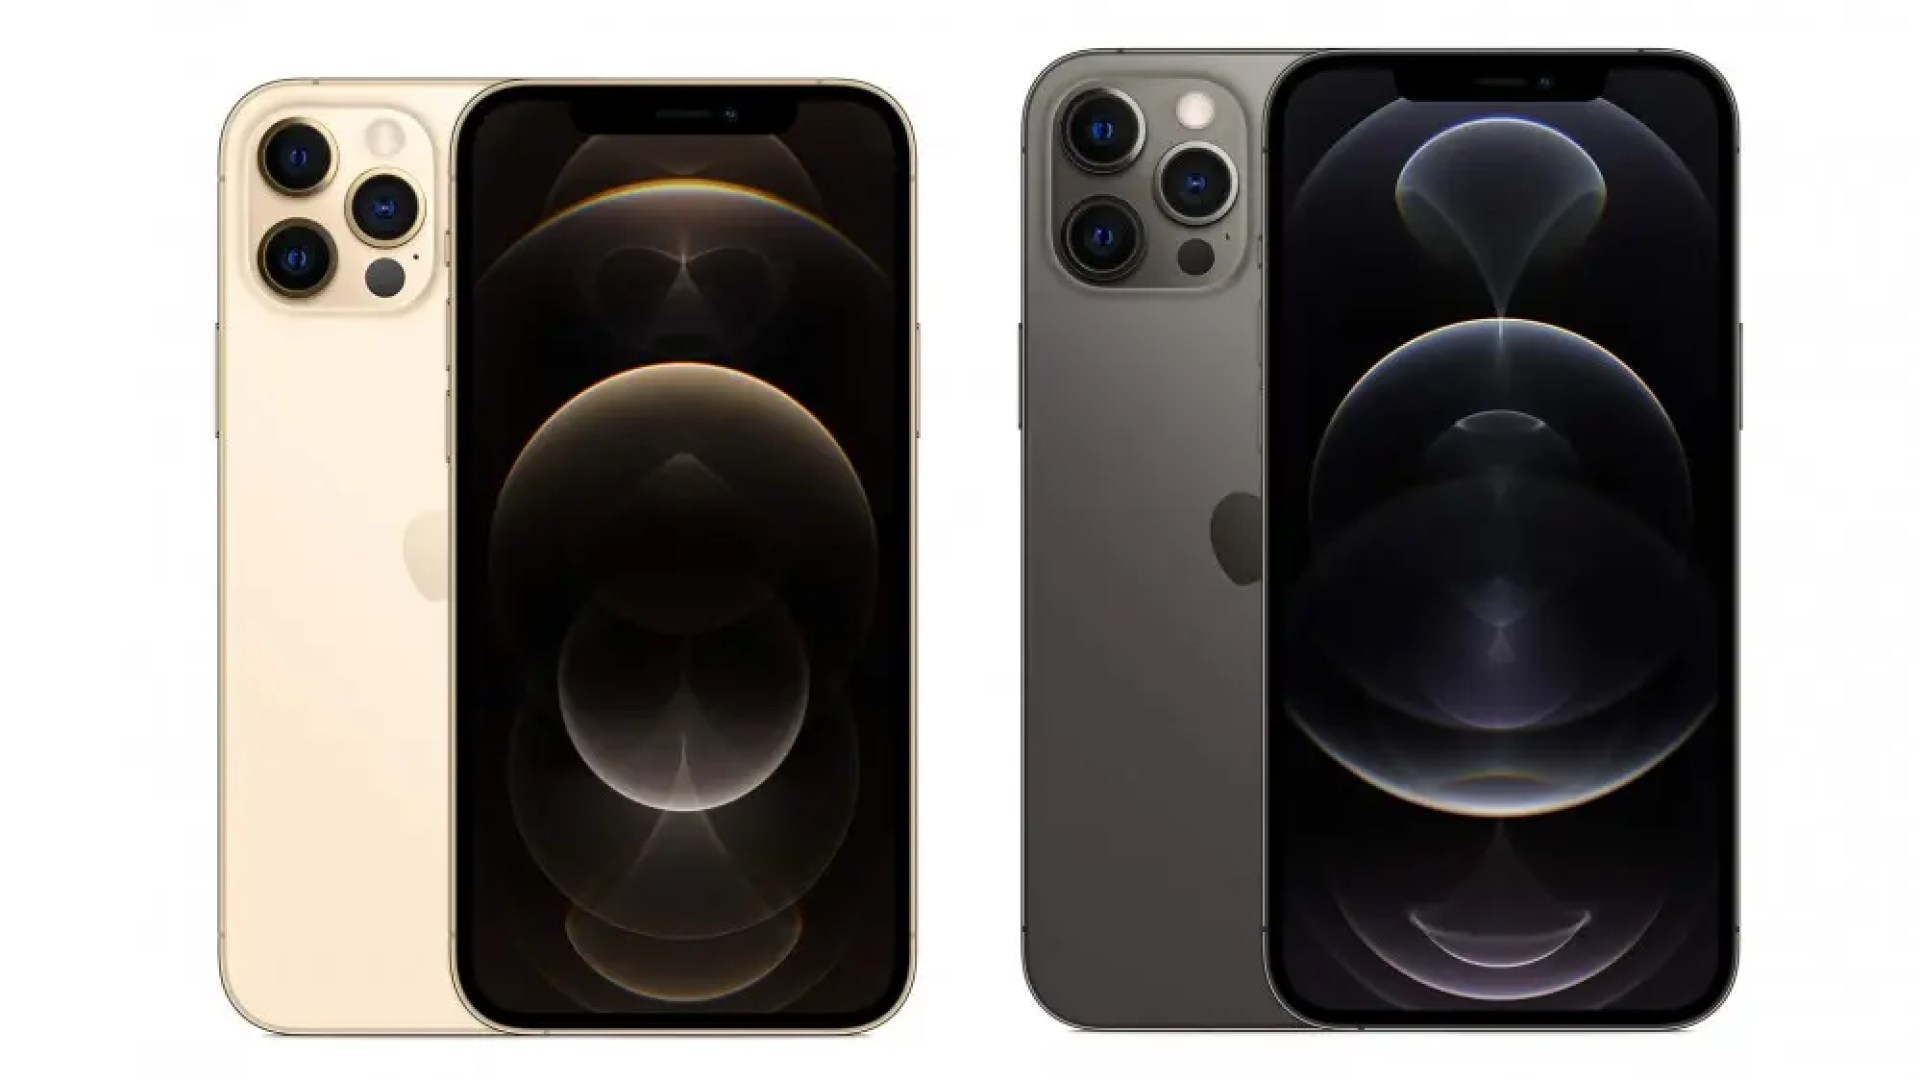 A photo of the iPhone 12 Pro and Pro Max.